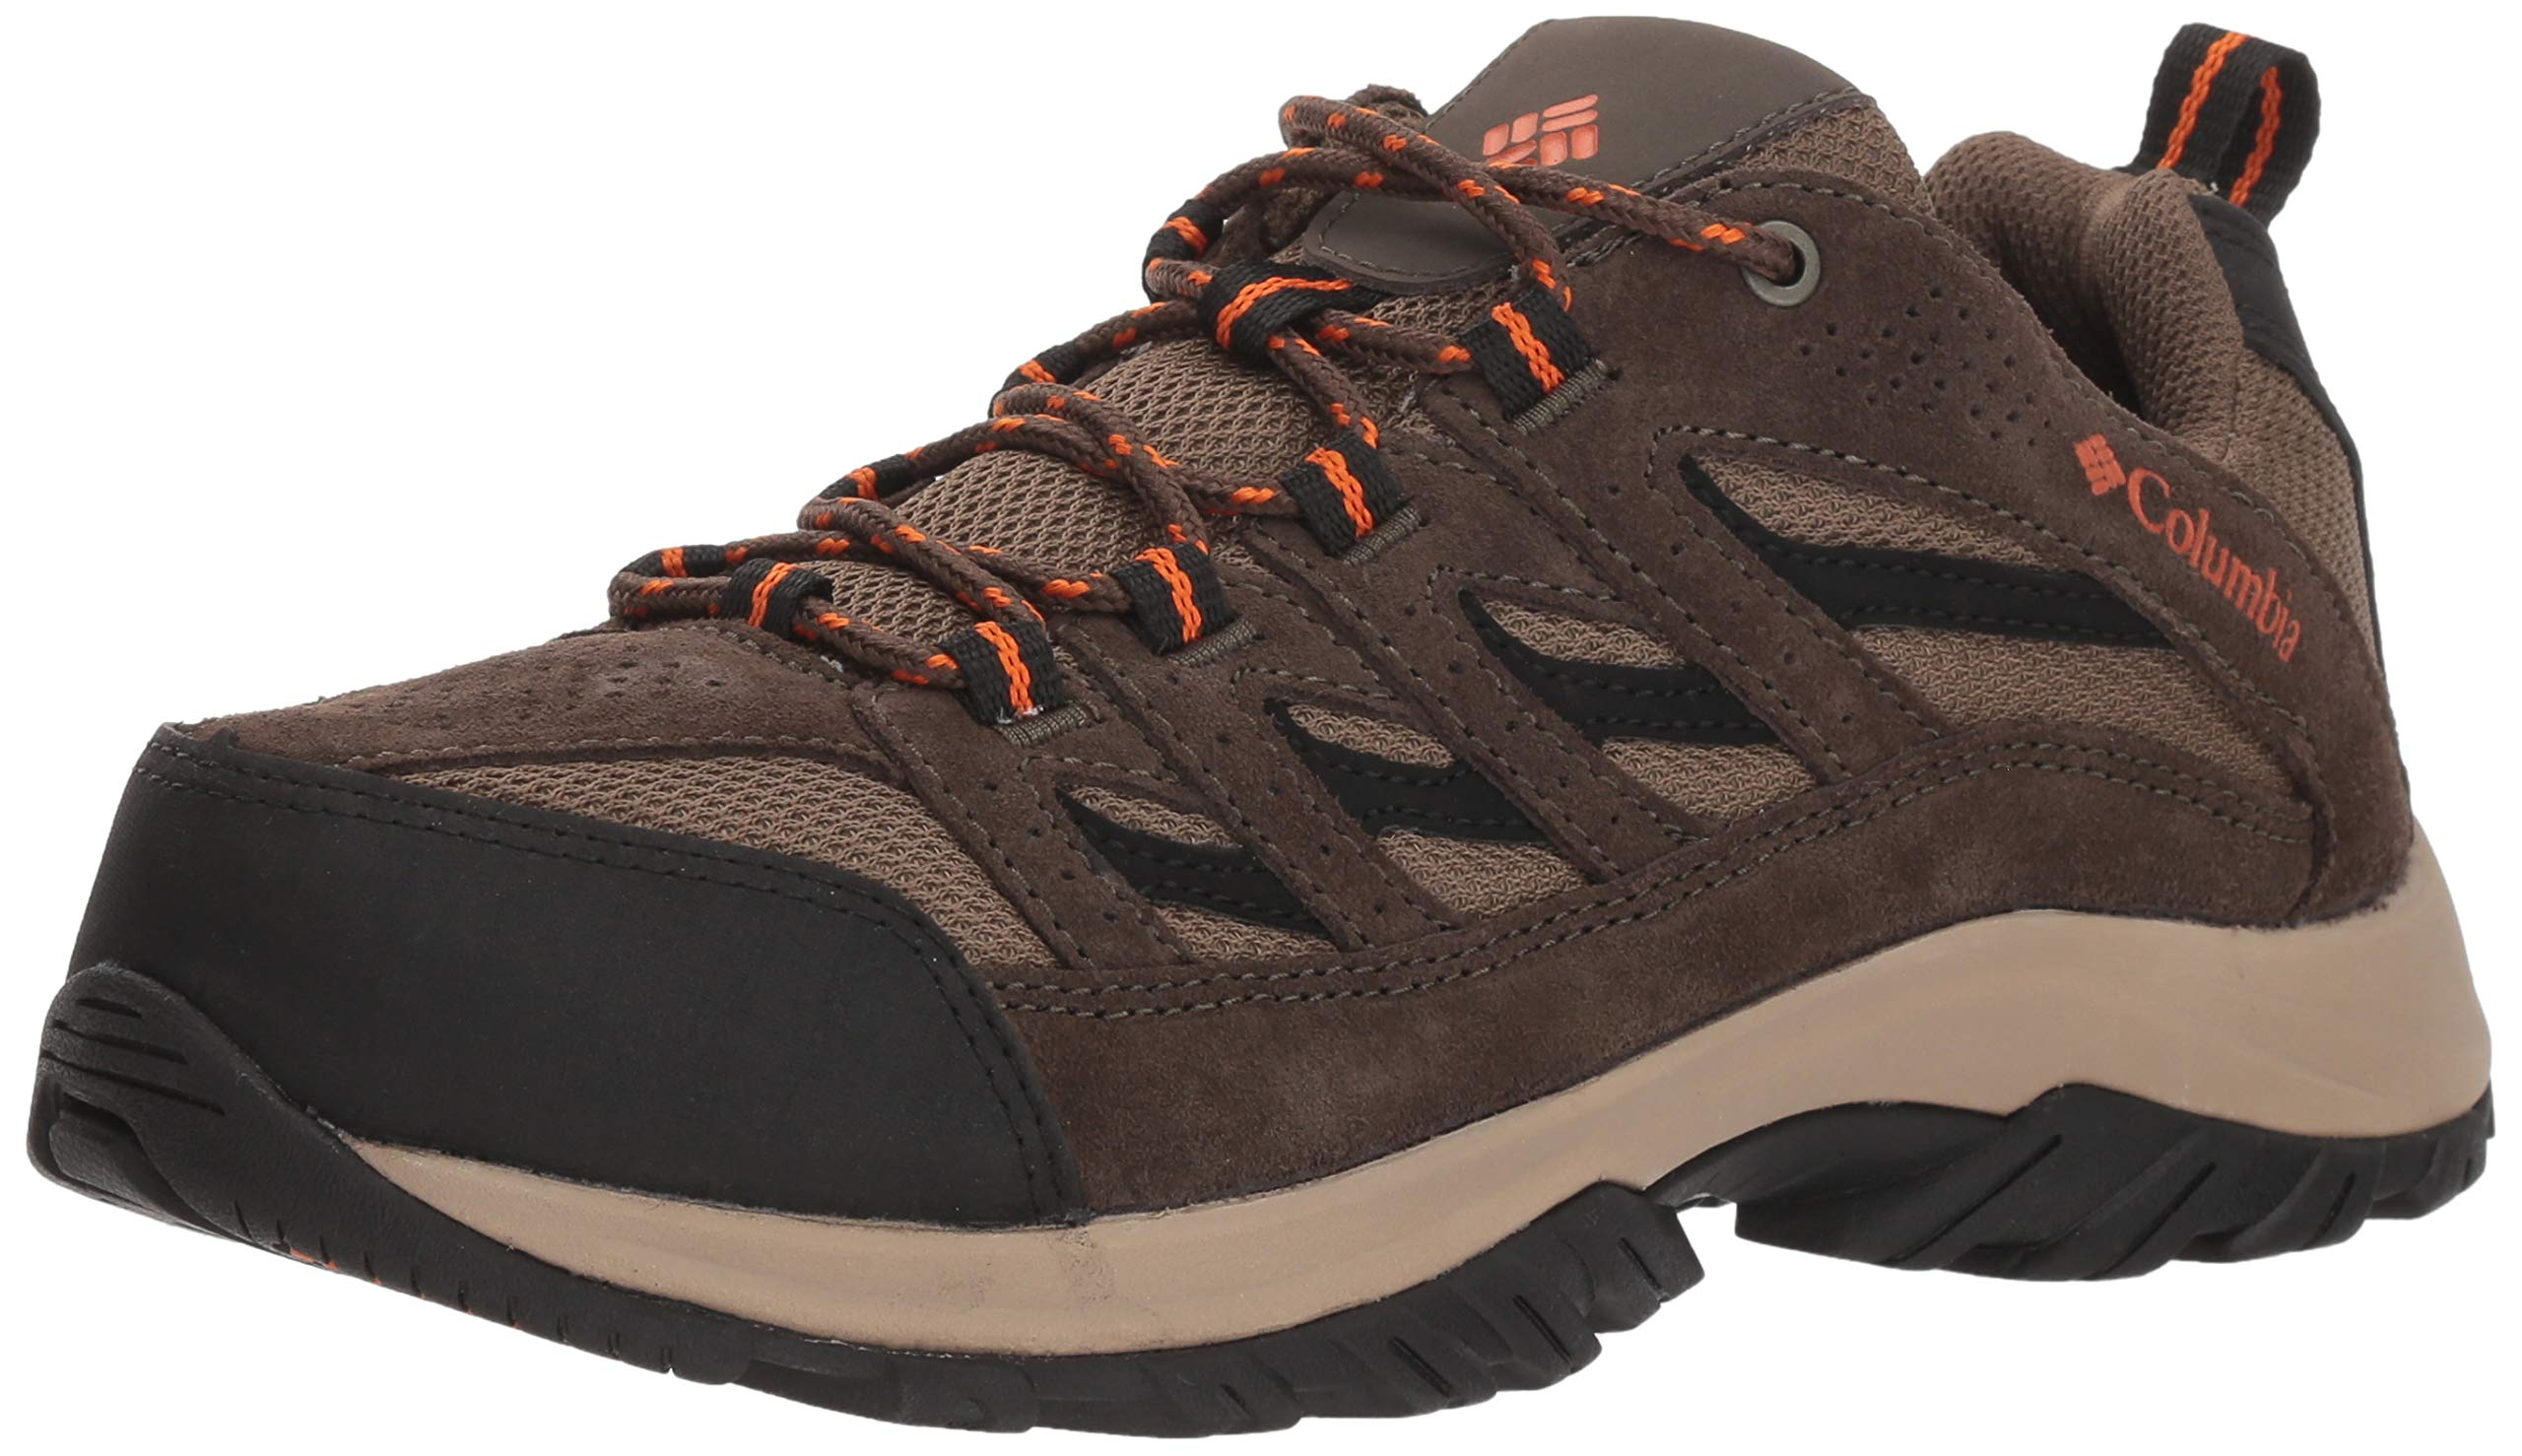 Columbia Men's Crestwood Wide Hiking Shoe, camo Brown, Heatwave, 14 Wide US